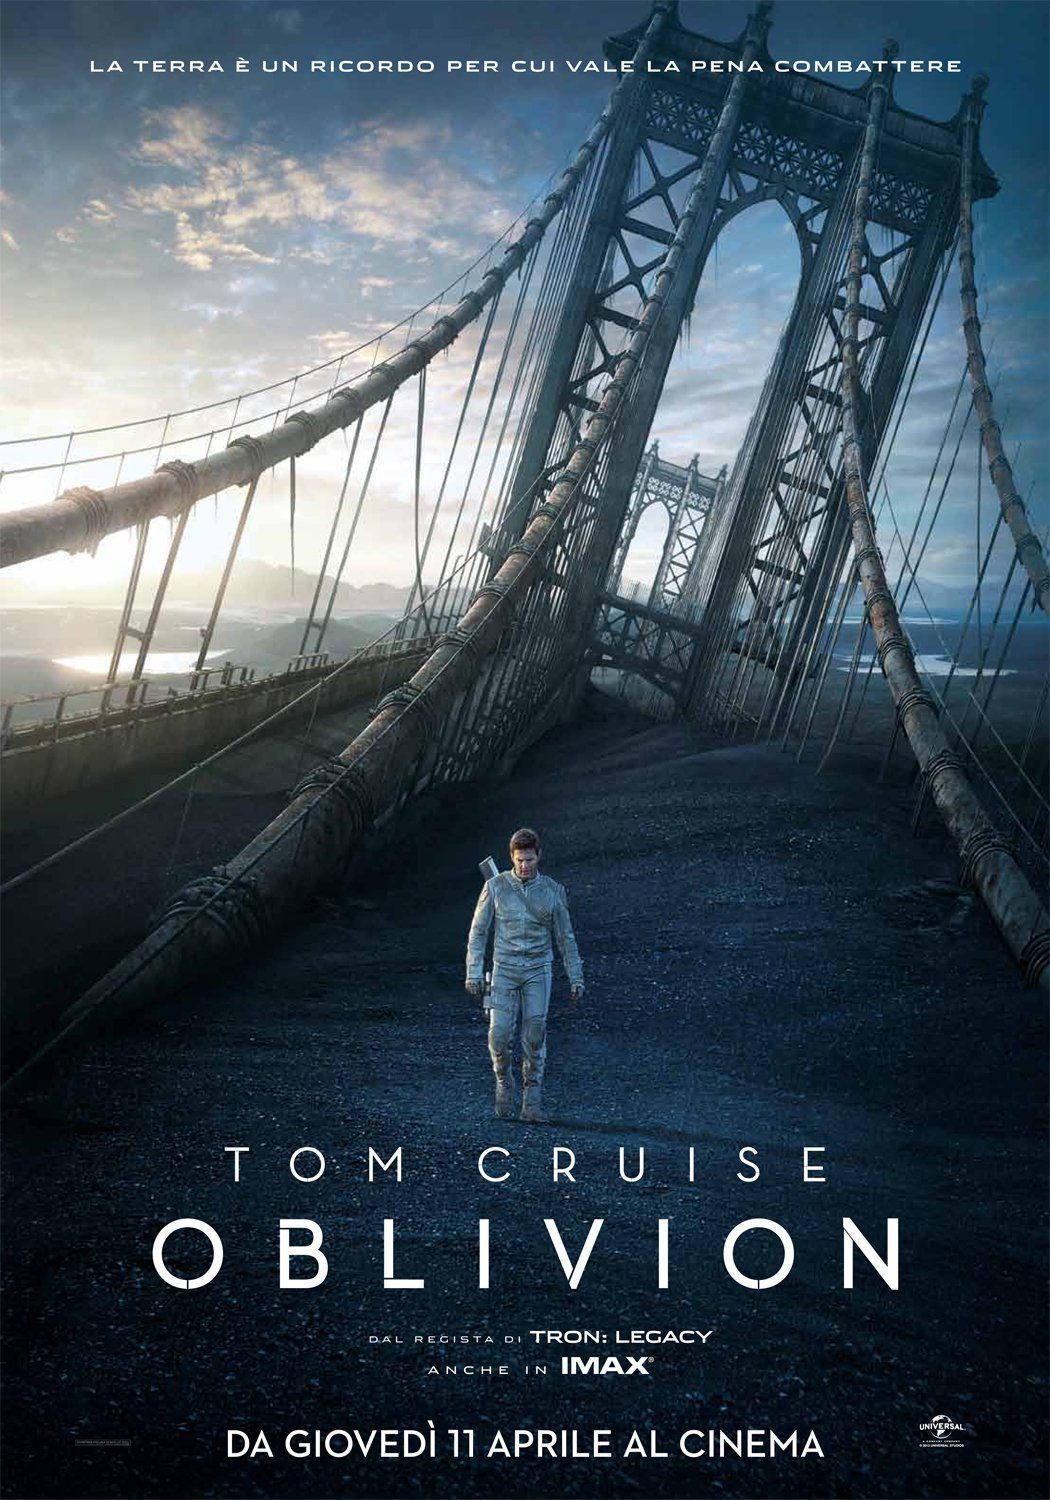 oblivion film completo del 2013 con tom cruise e morgan freeman in